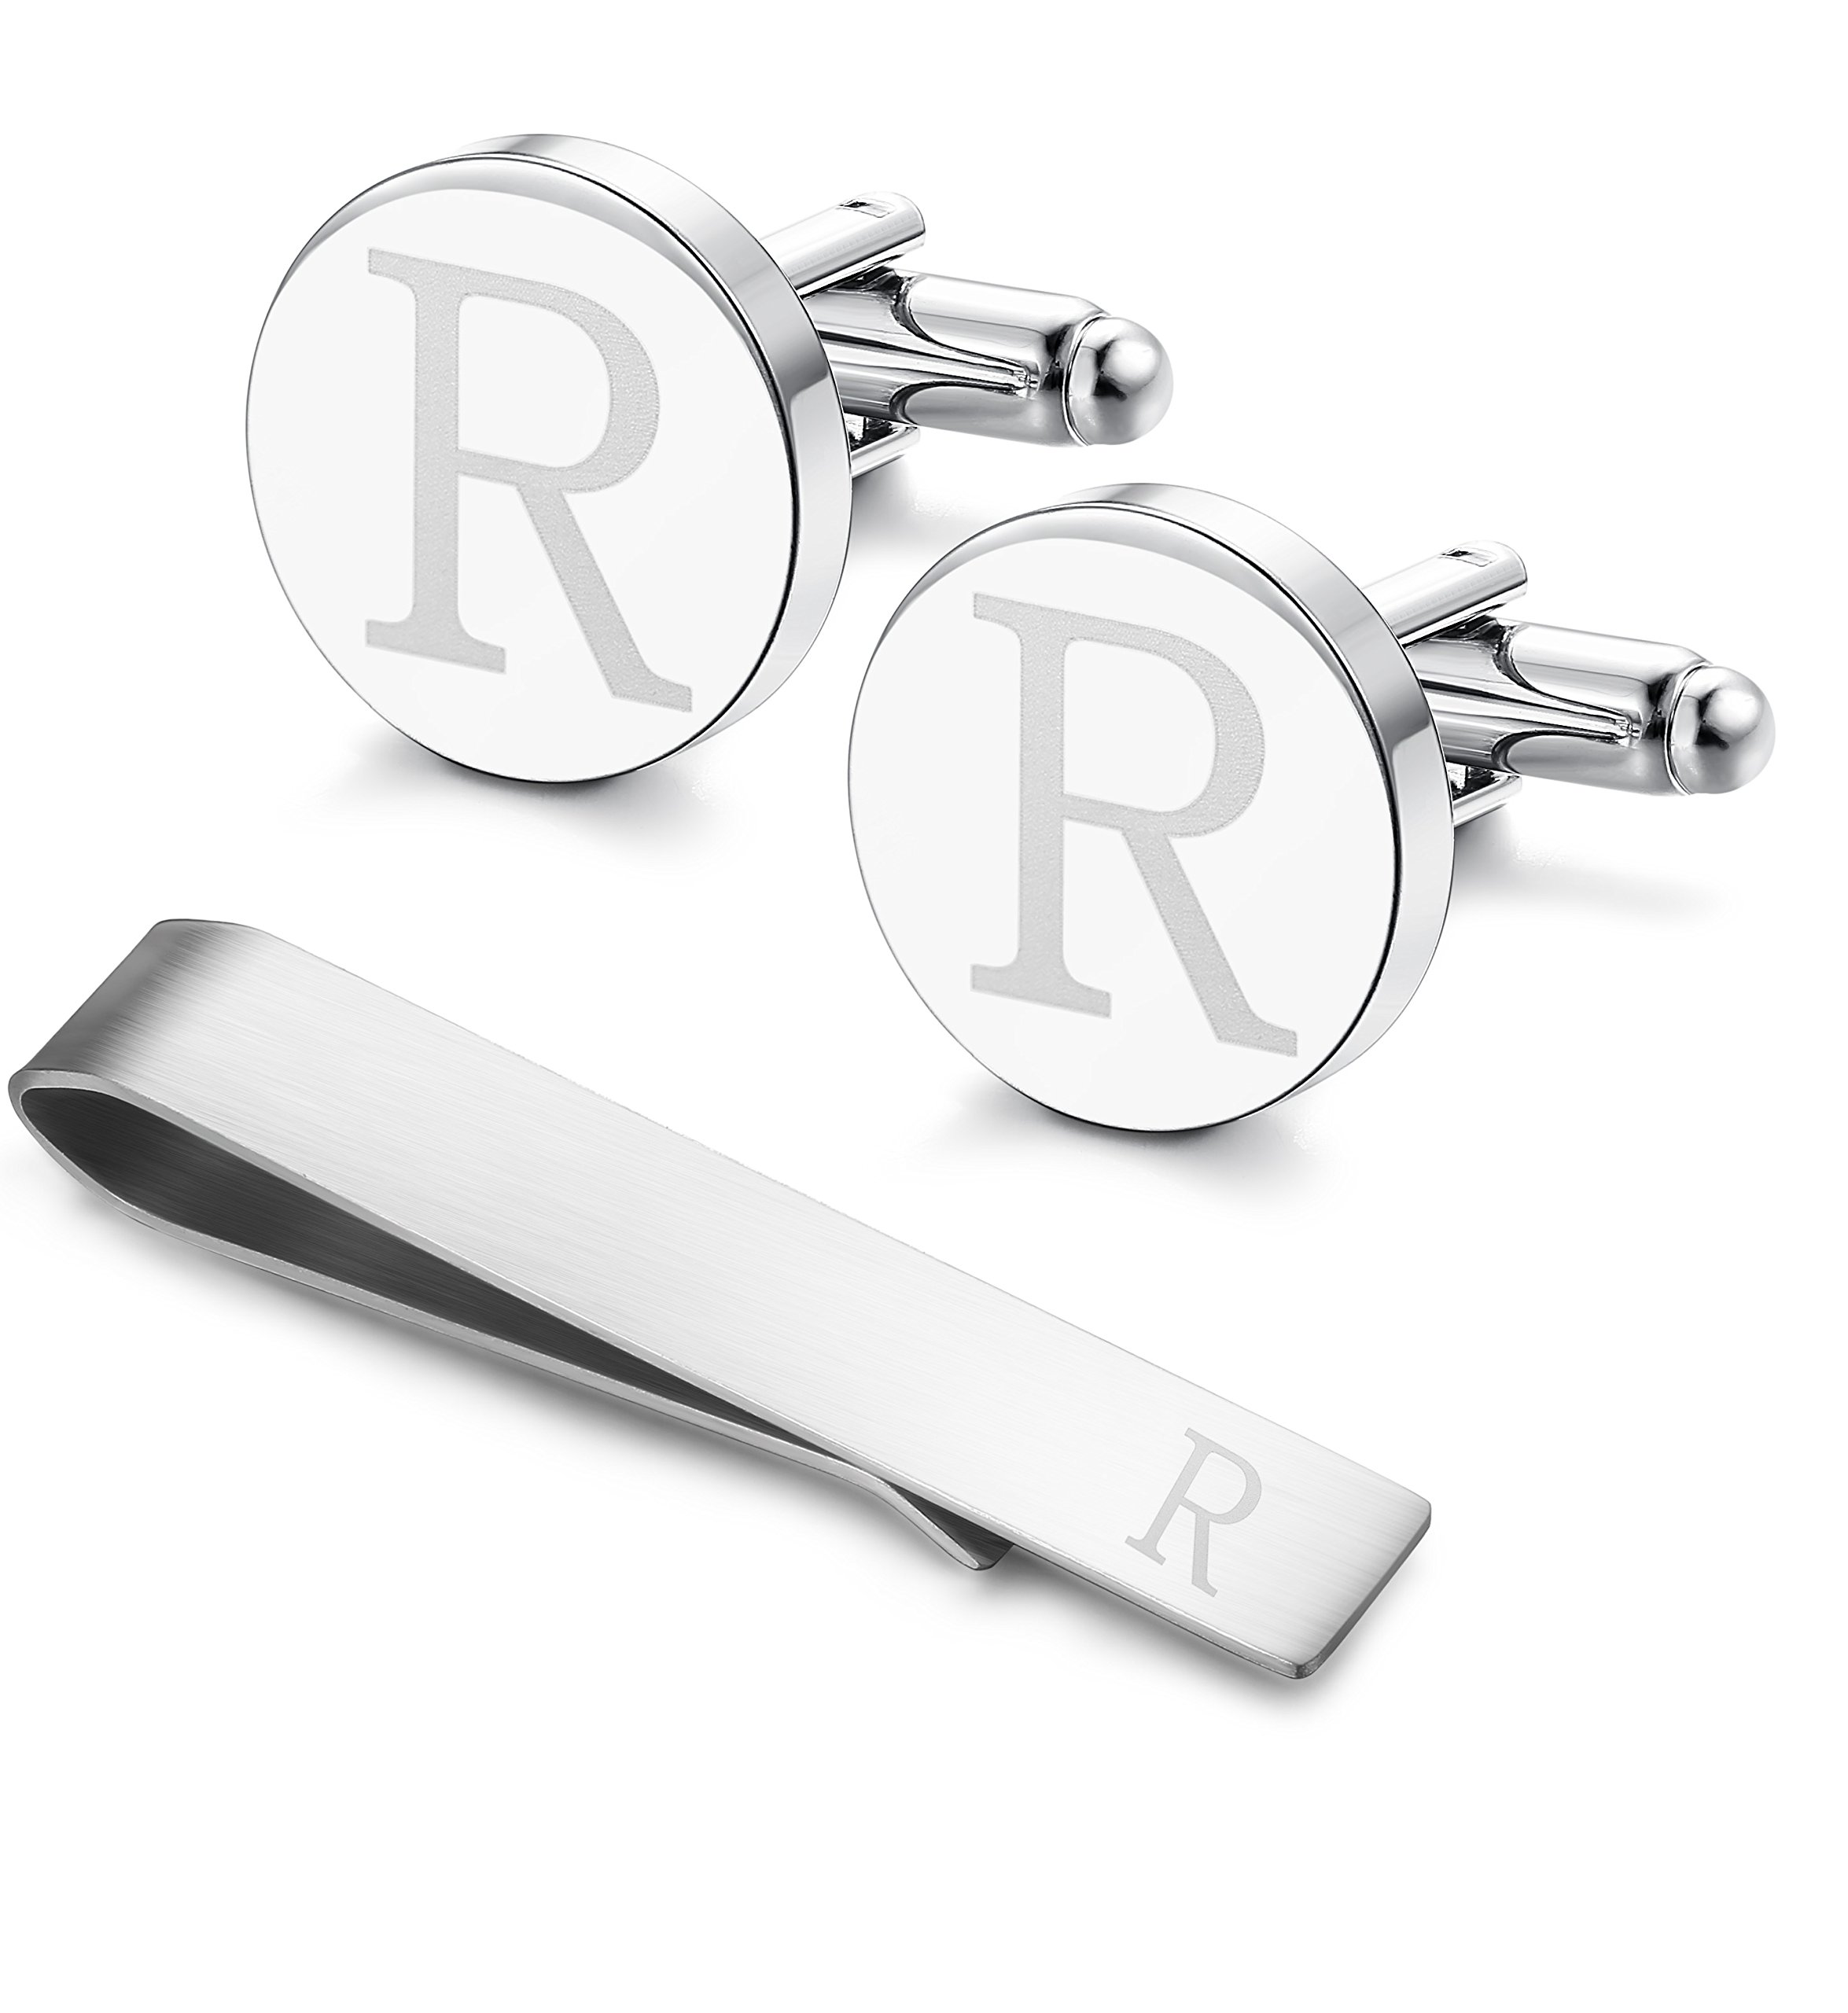 Classic Engraved Initial Cufflinks and Tie Clip Bar Set Alphabet Letter Formal Business Wedding Shirts R